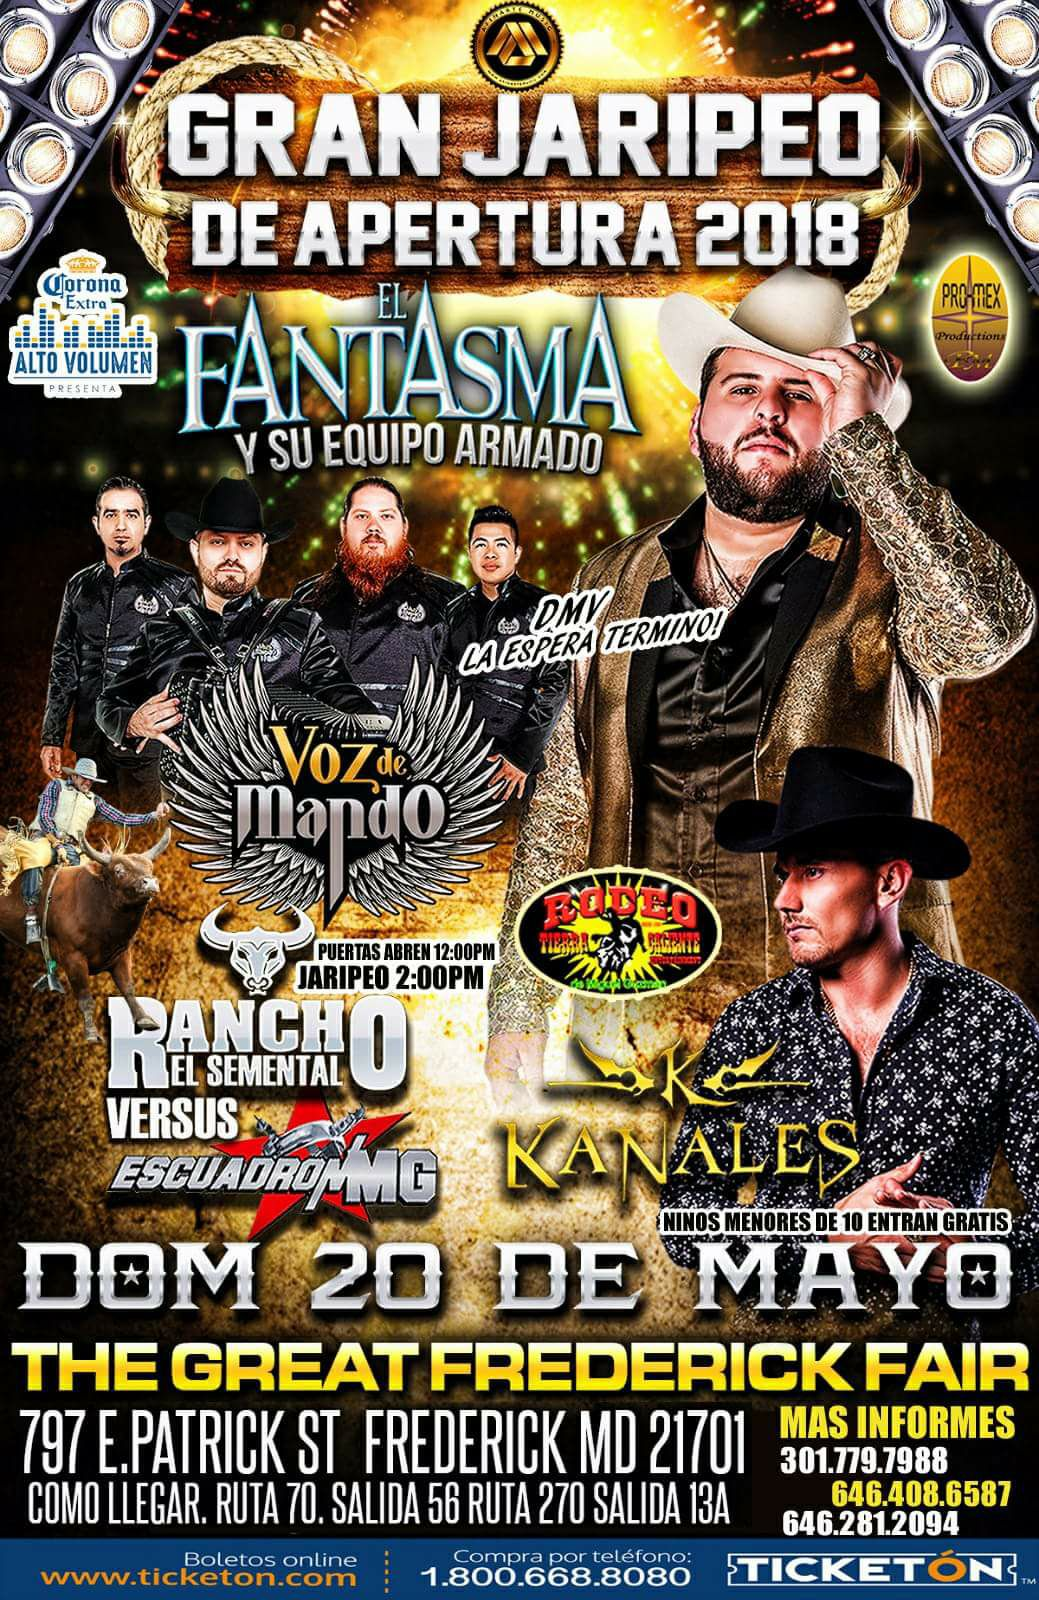 Super Jaripeo con El Fantasma | Rodeo Tierra Caliente MG